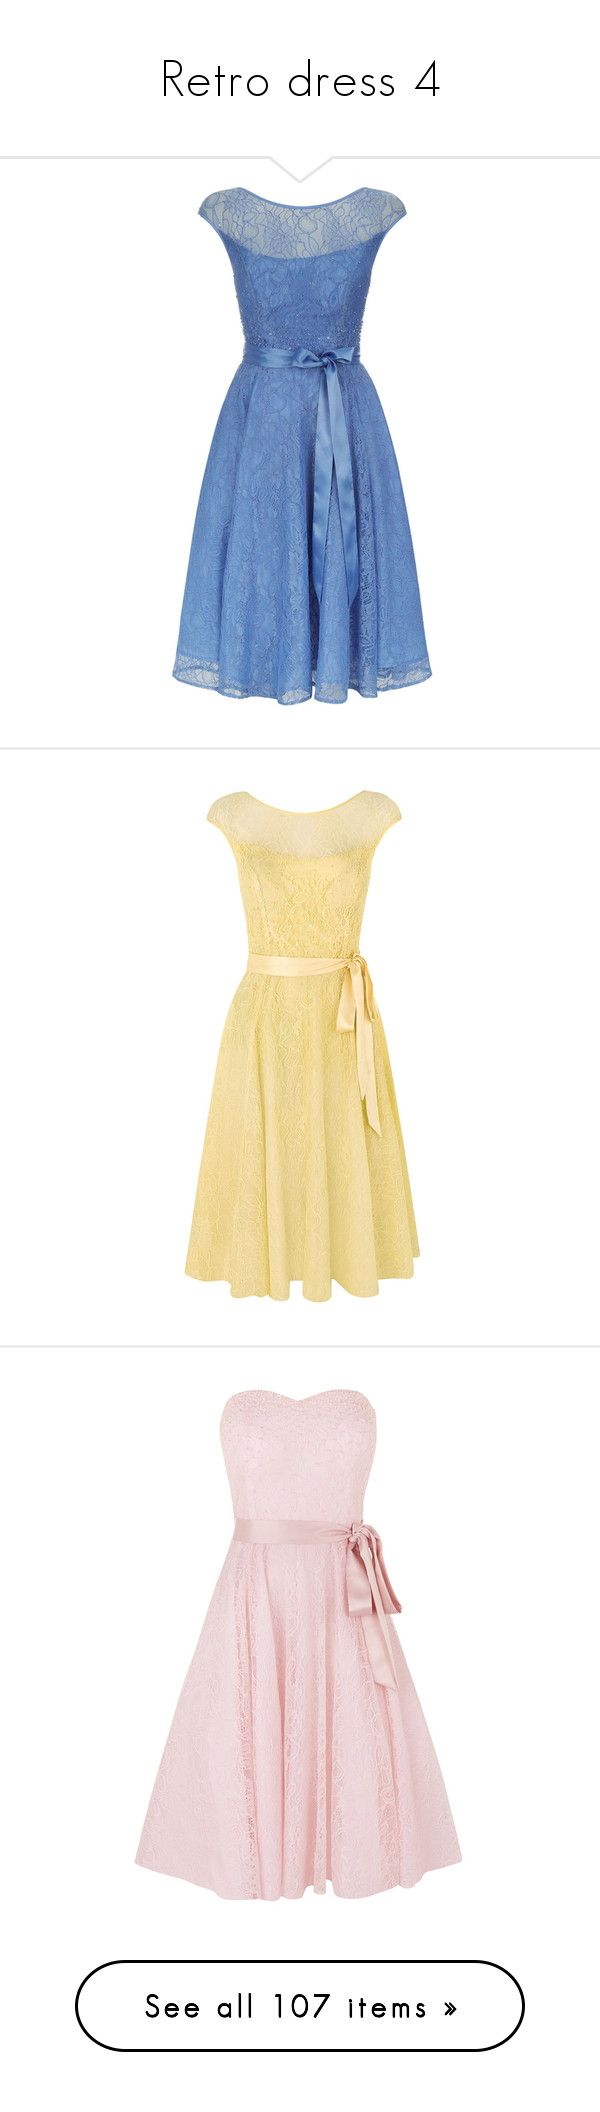 """""""Retro dress 4"""" by erissa ❤ liked on Polyvore featuring dresses, short dresses, light blue, sale, blue lace cocktail dress, light blue cocktail dress, a line prom dresses, blue floral dress, blue lace dresses and yellow"""